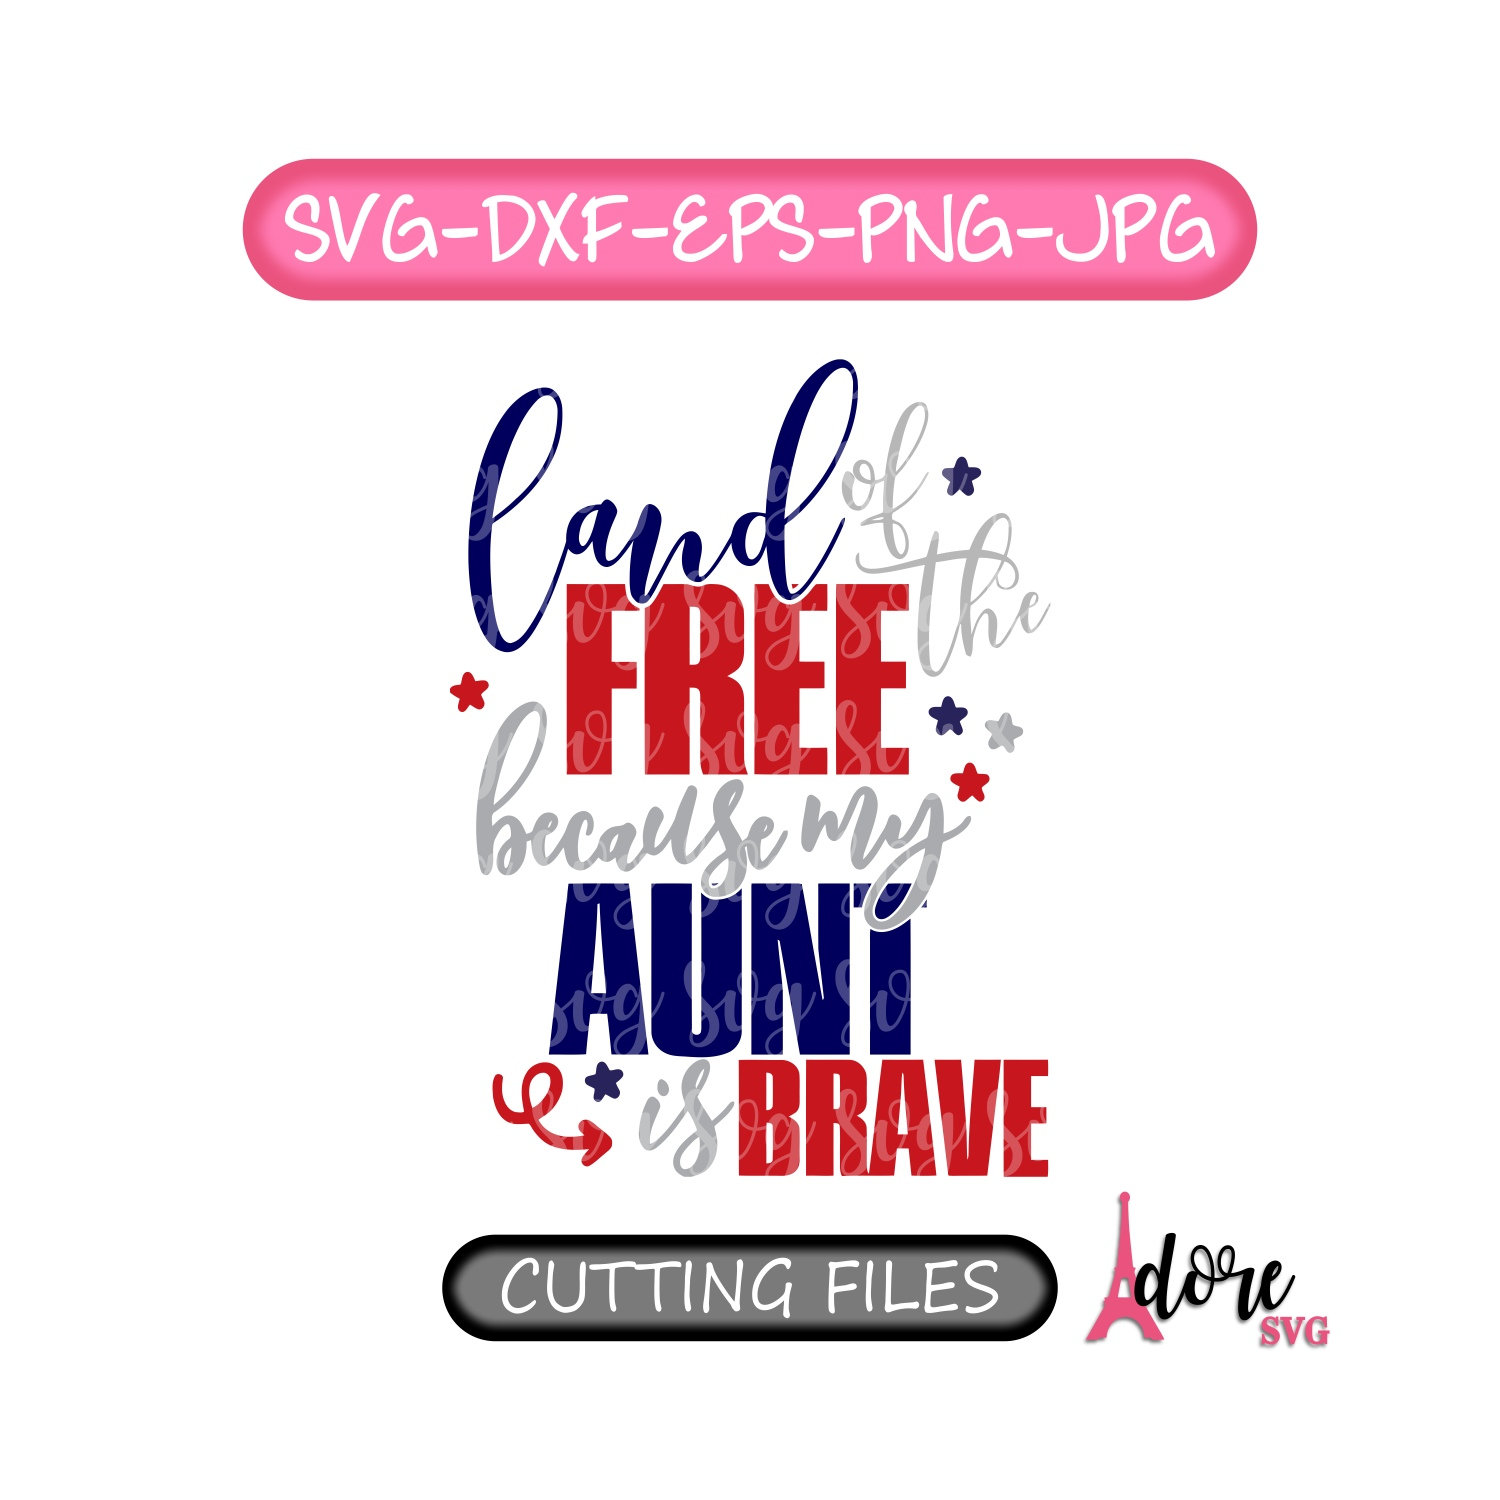 Land Of The Free Svg 4th Of July Svg Independence Day Svg Military Svg Tshirt Svg Military Aunt Svg July 4th Svg Because Of The Brave Svg For Cricut